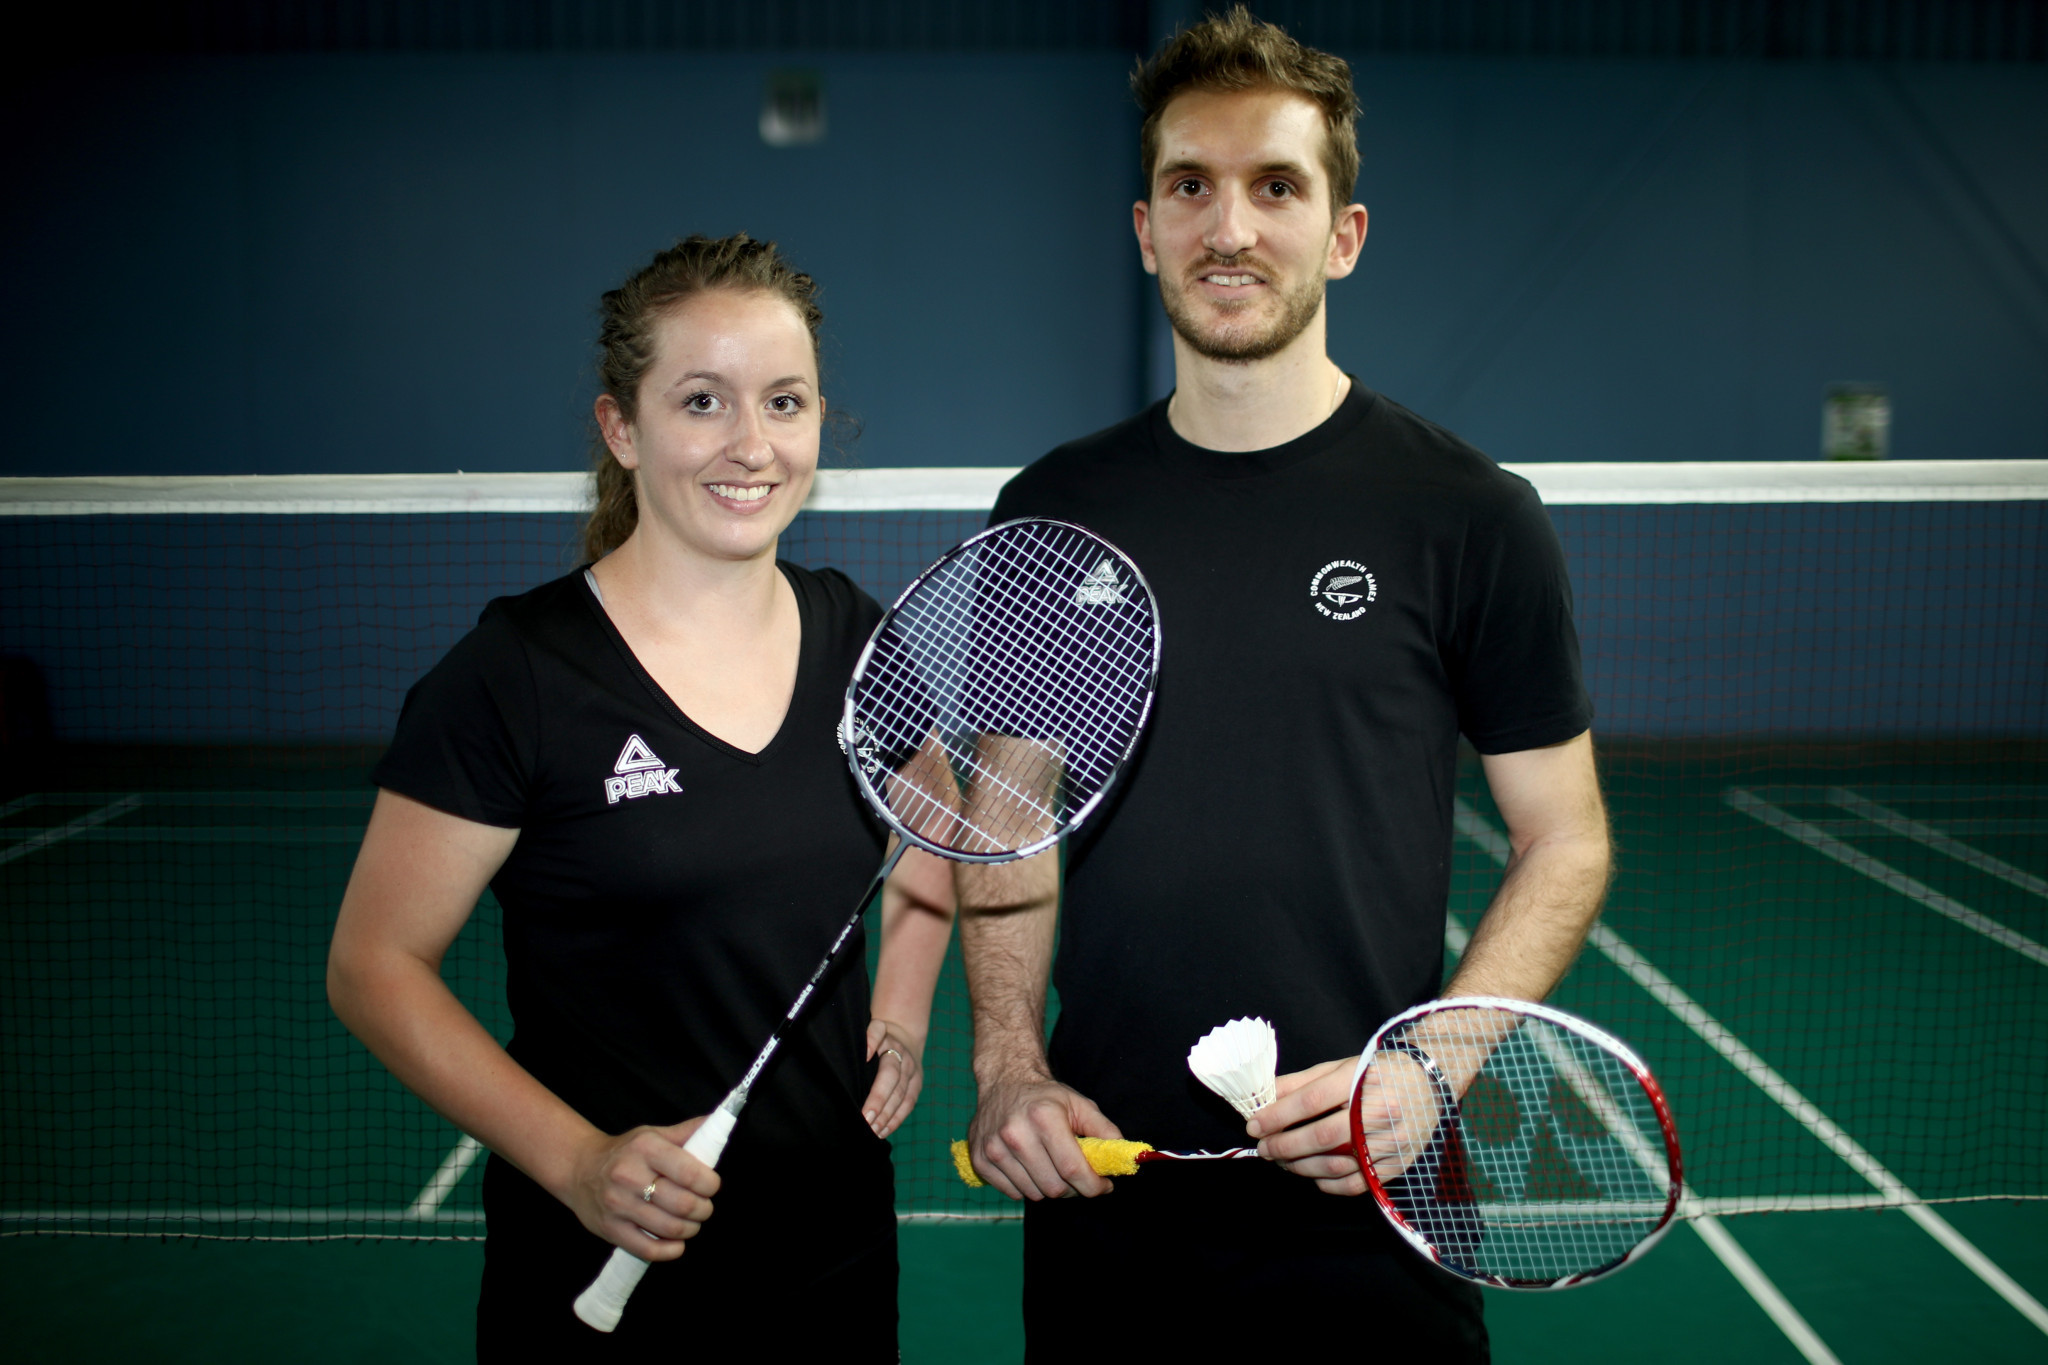 New Zealand select sibling duo for Gold Coast 2018 badminton team